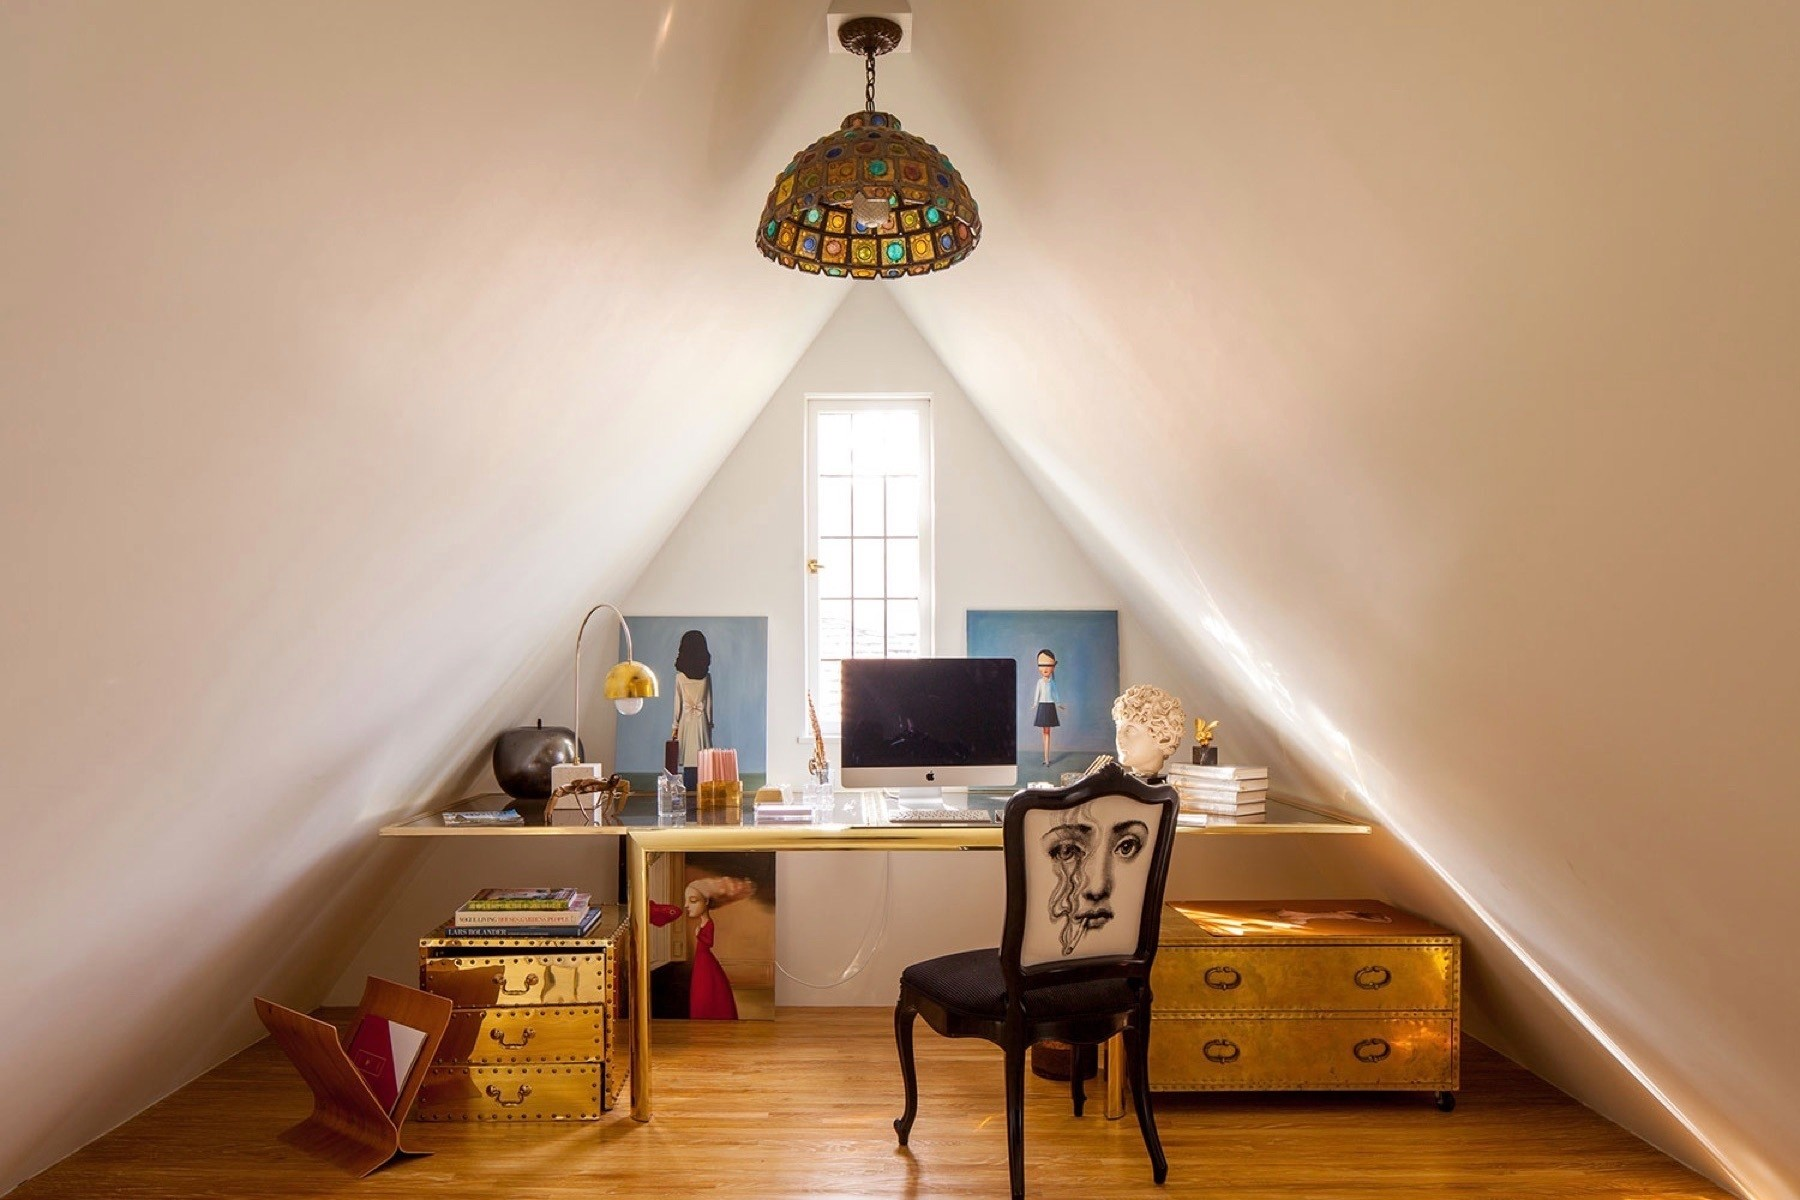 Small Space Tips That Will Make Your Tiny Room Feel Big